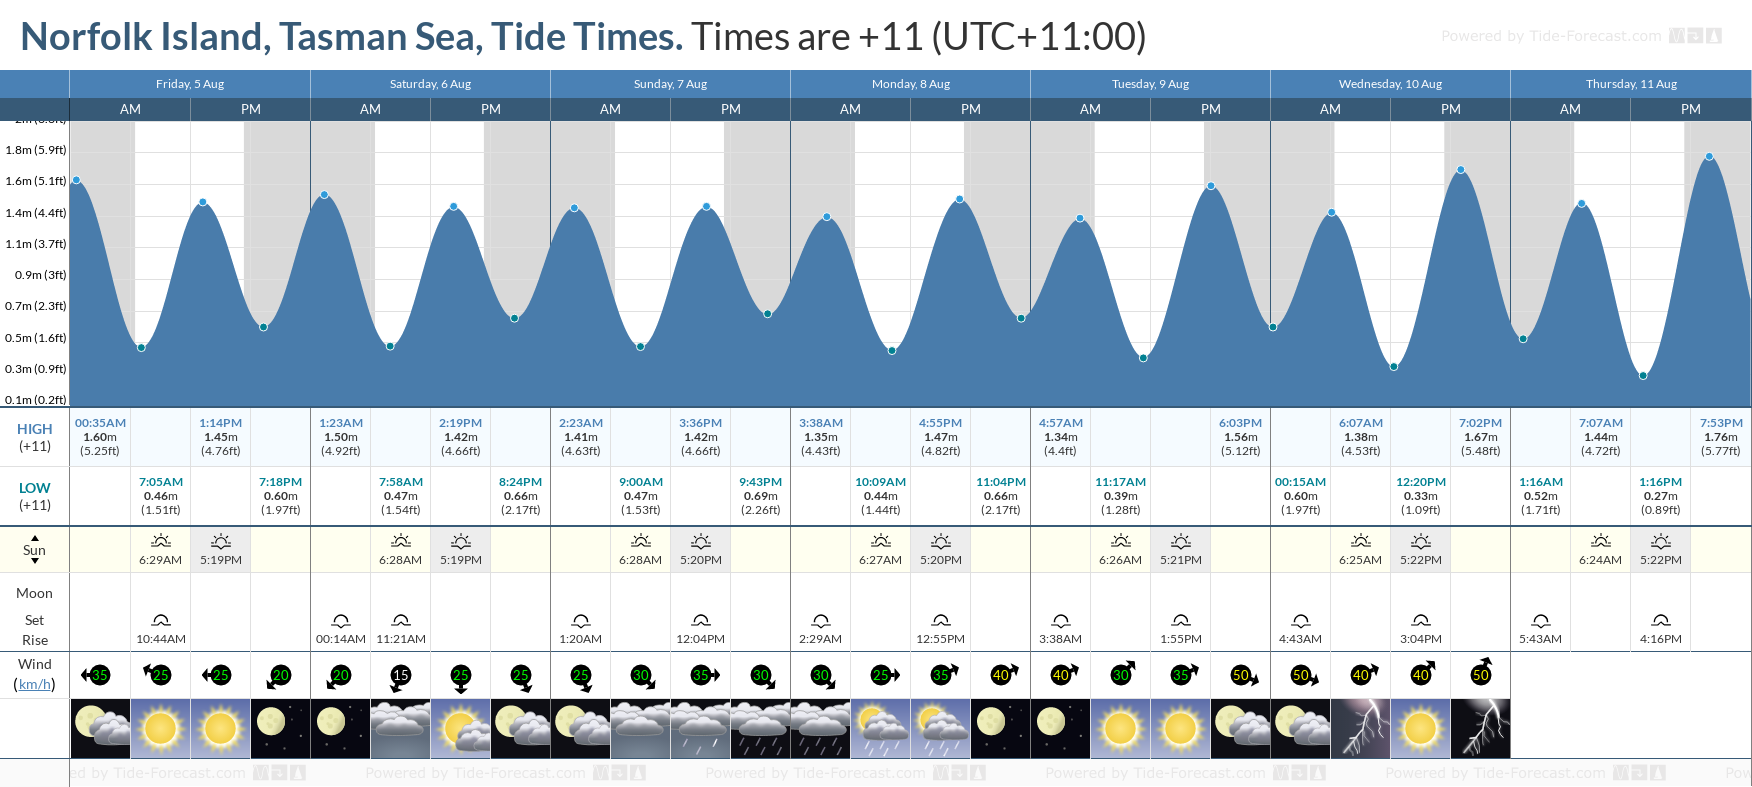 Norfolk Island, Tasman Sea Tide Chart including high and low tide tide times for the next 7 days